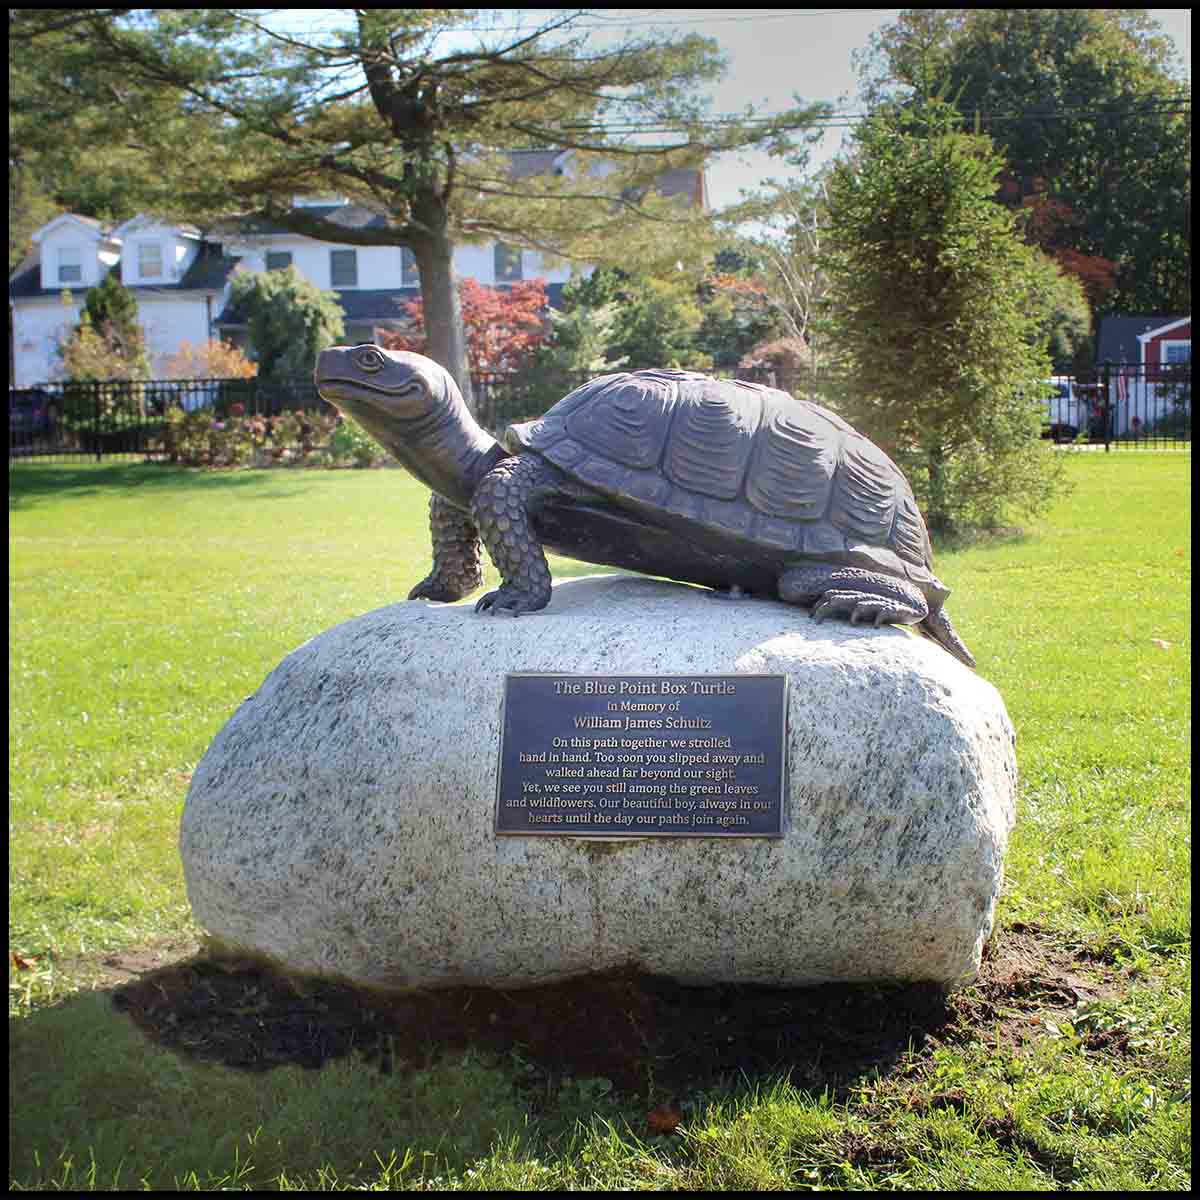 photo of bronze-colored sculpture of turtle with head raised on rock with bronze-colored plaque in park setting